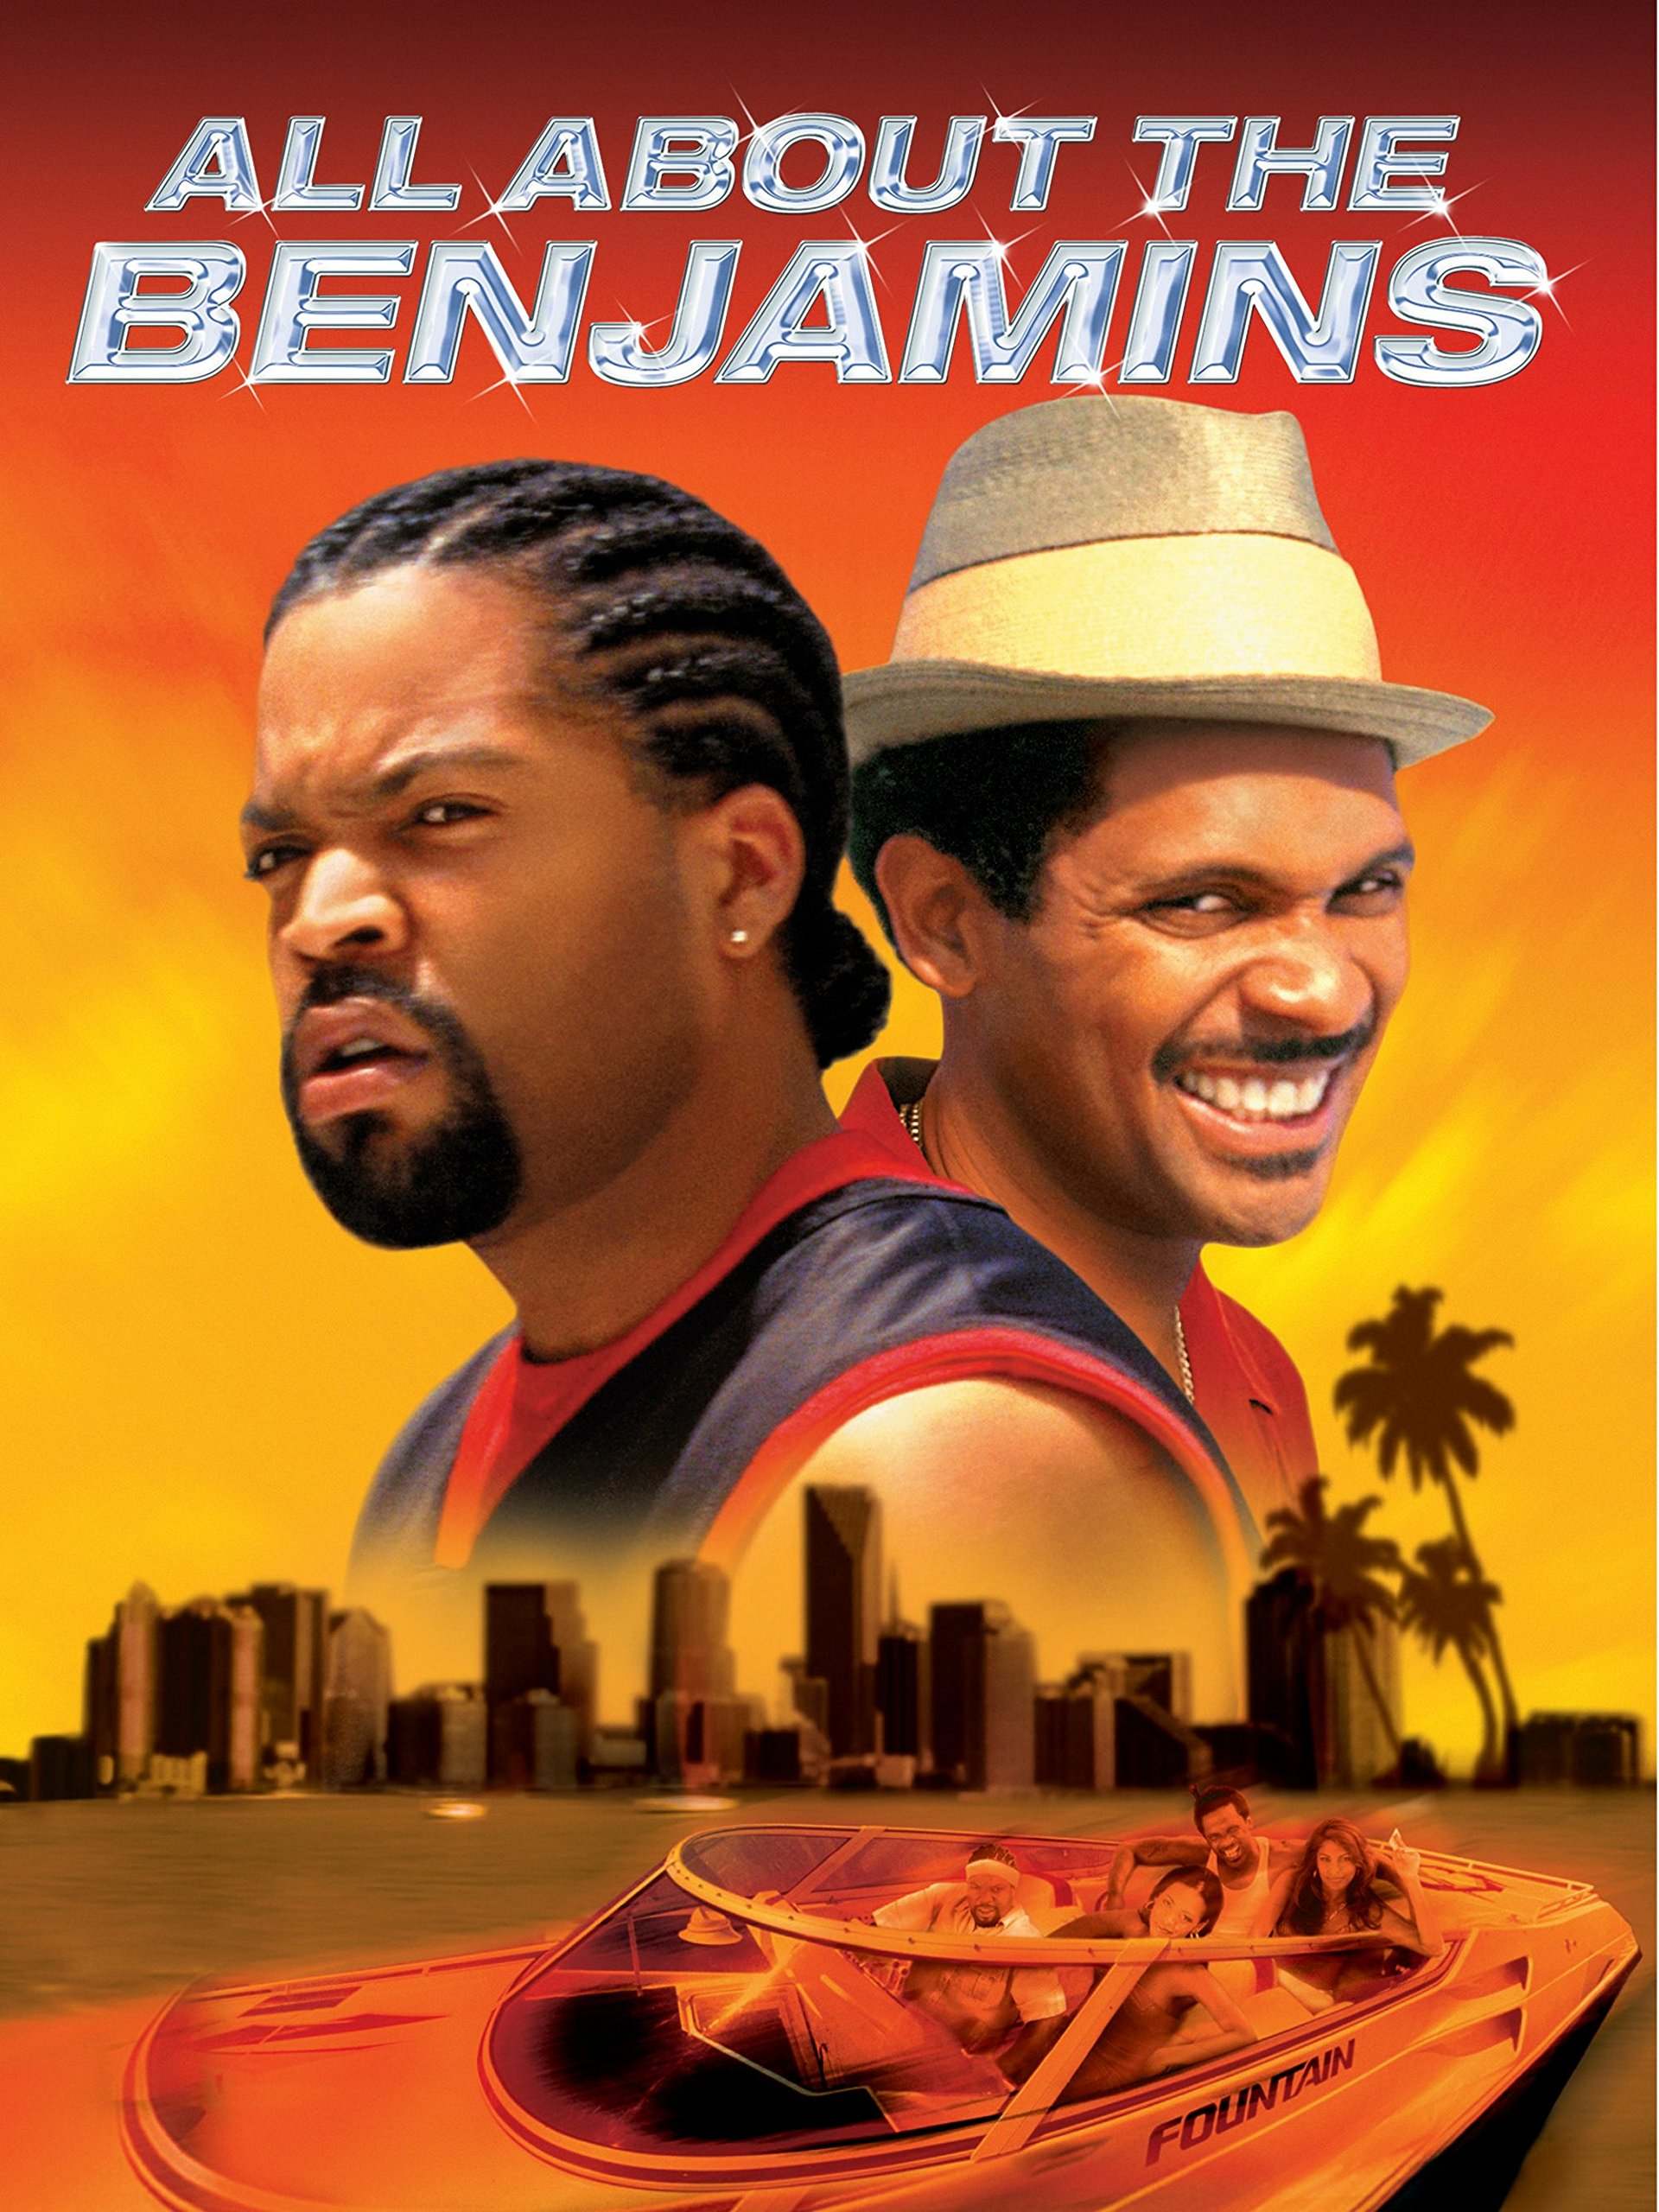 Ice cube as bucum film title all about the benjamins stock photos.